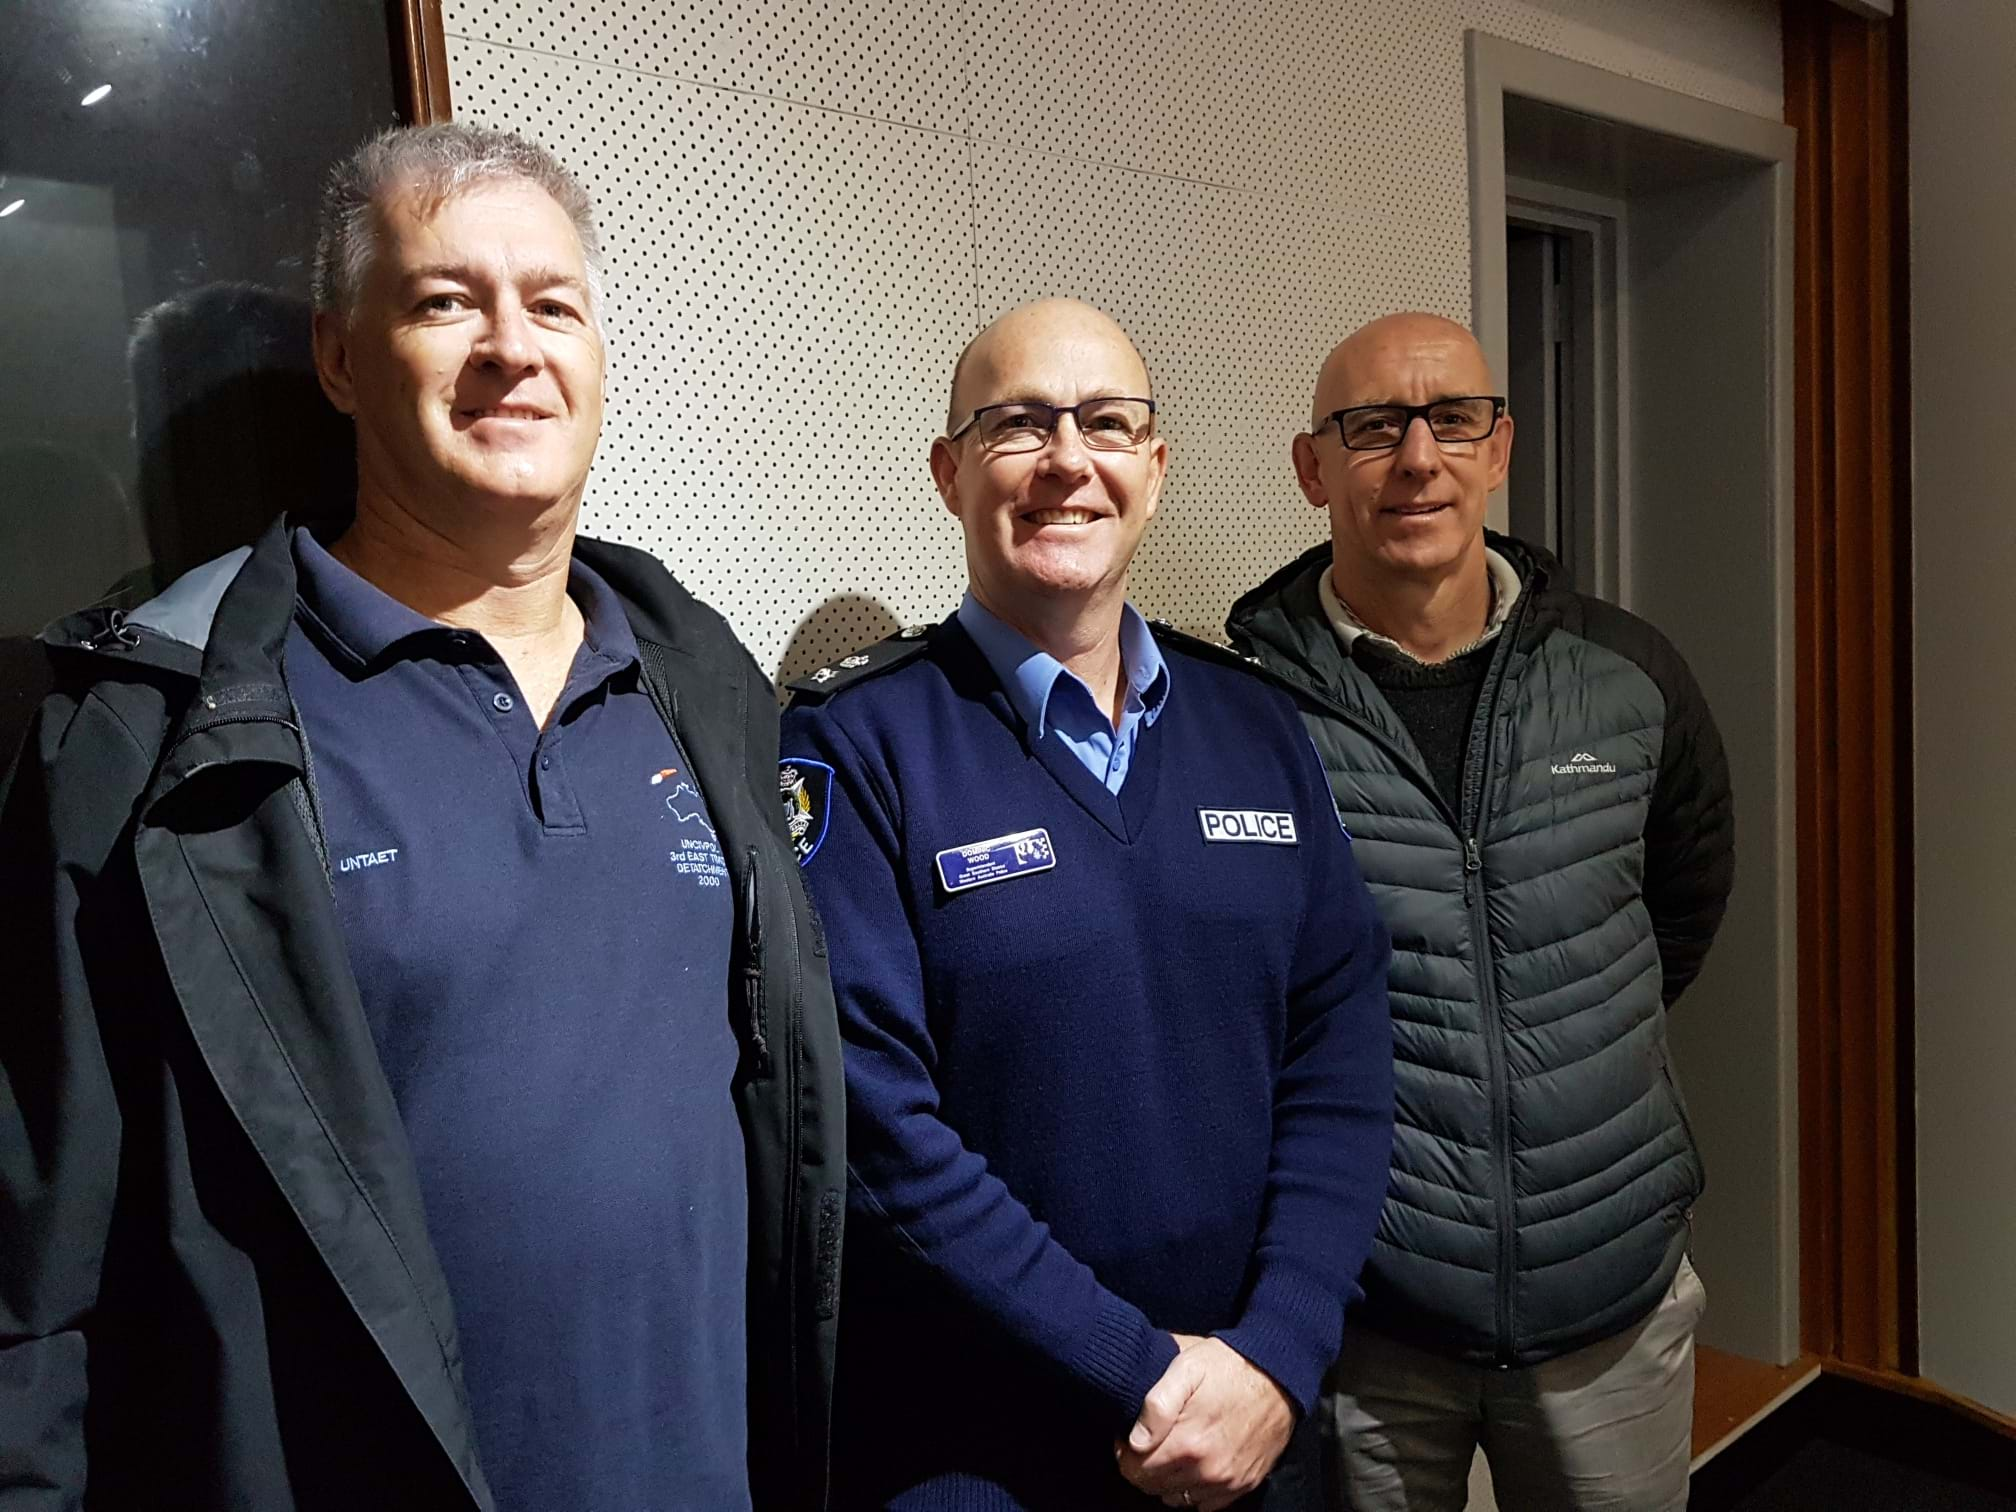 Insp Geoff Andrijasevich (left), Supt Dom Wood and CEO of Crime Stoppers Vince Hughes at Triple M with an update on the National Firearms Amnesty